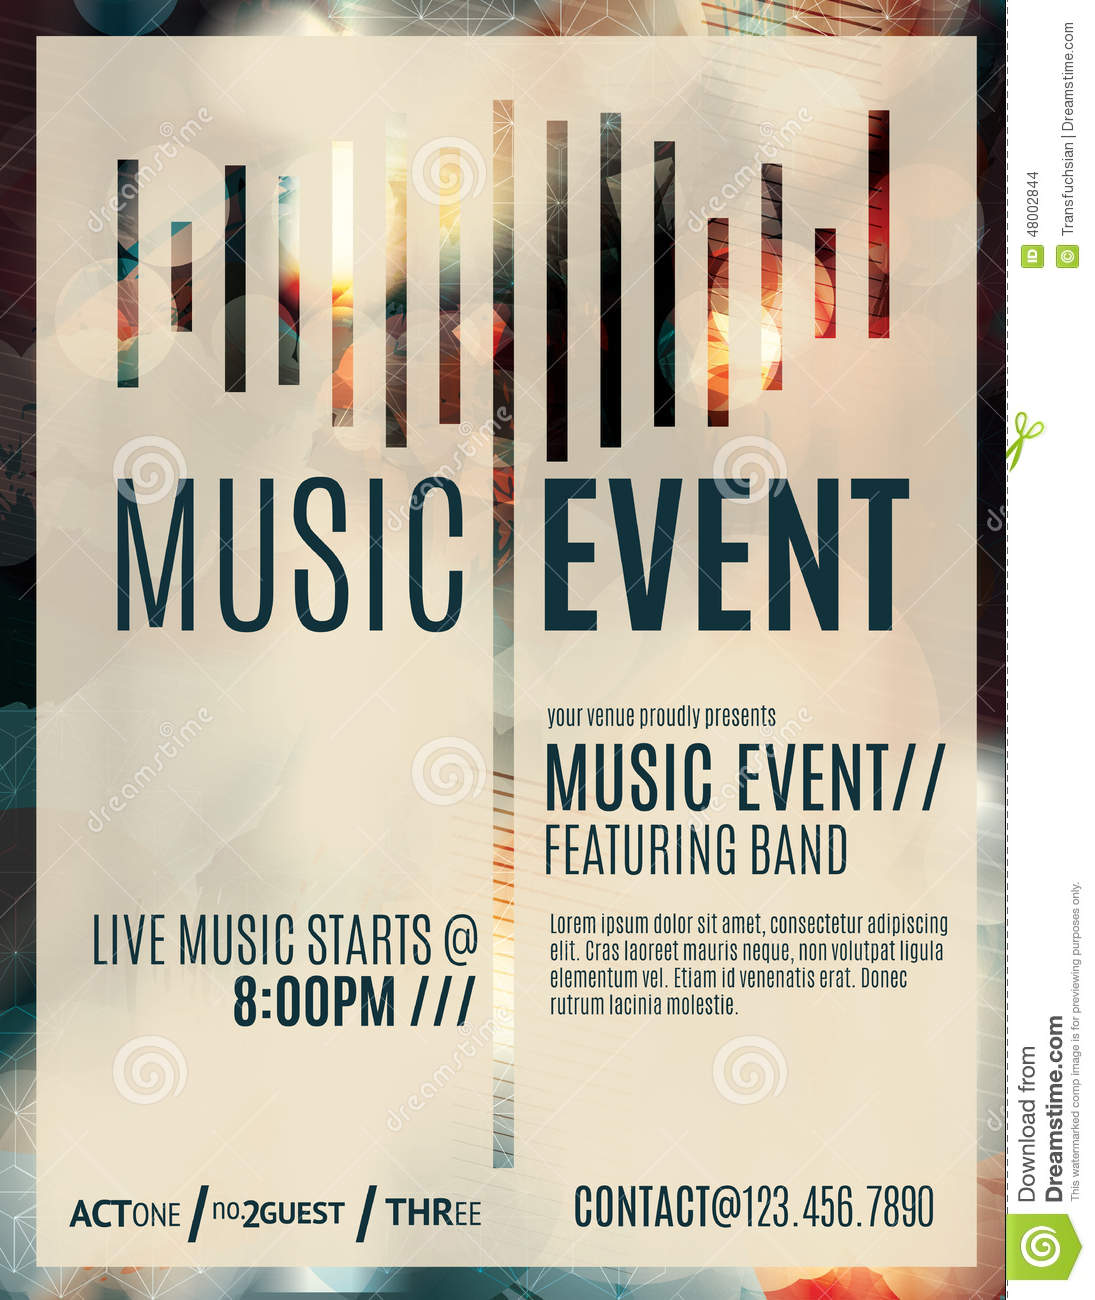 Music Event Flyer Template Vector Image 48002844 – Event Flyer